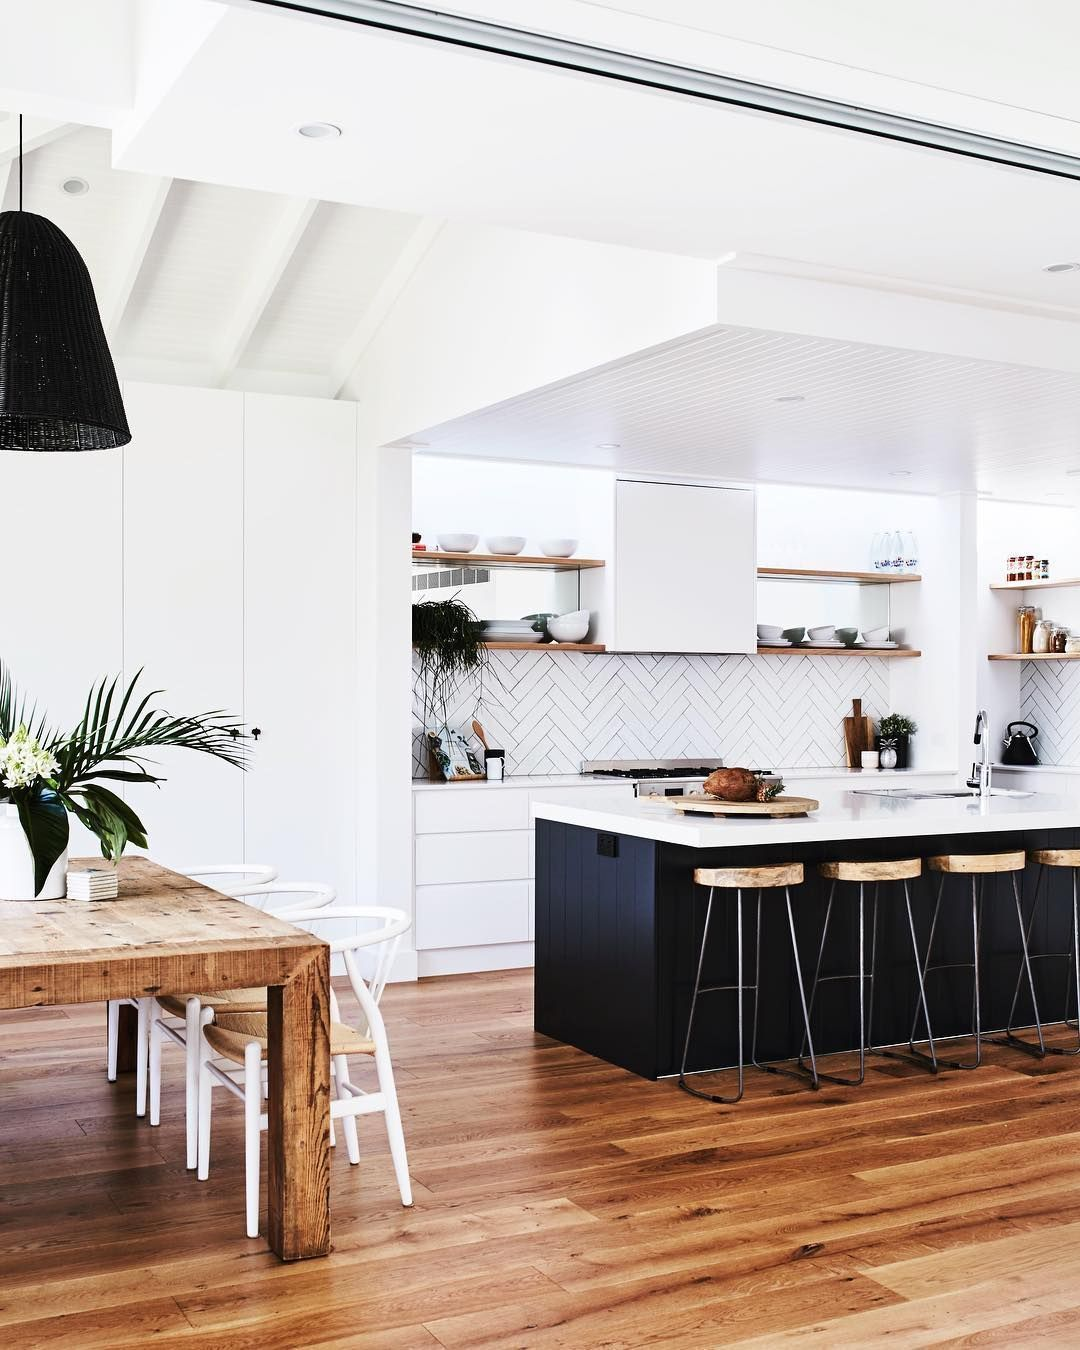 Home Interior Design — Kitchen interiors Modern kitchen